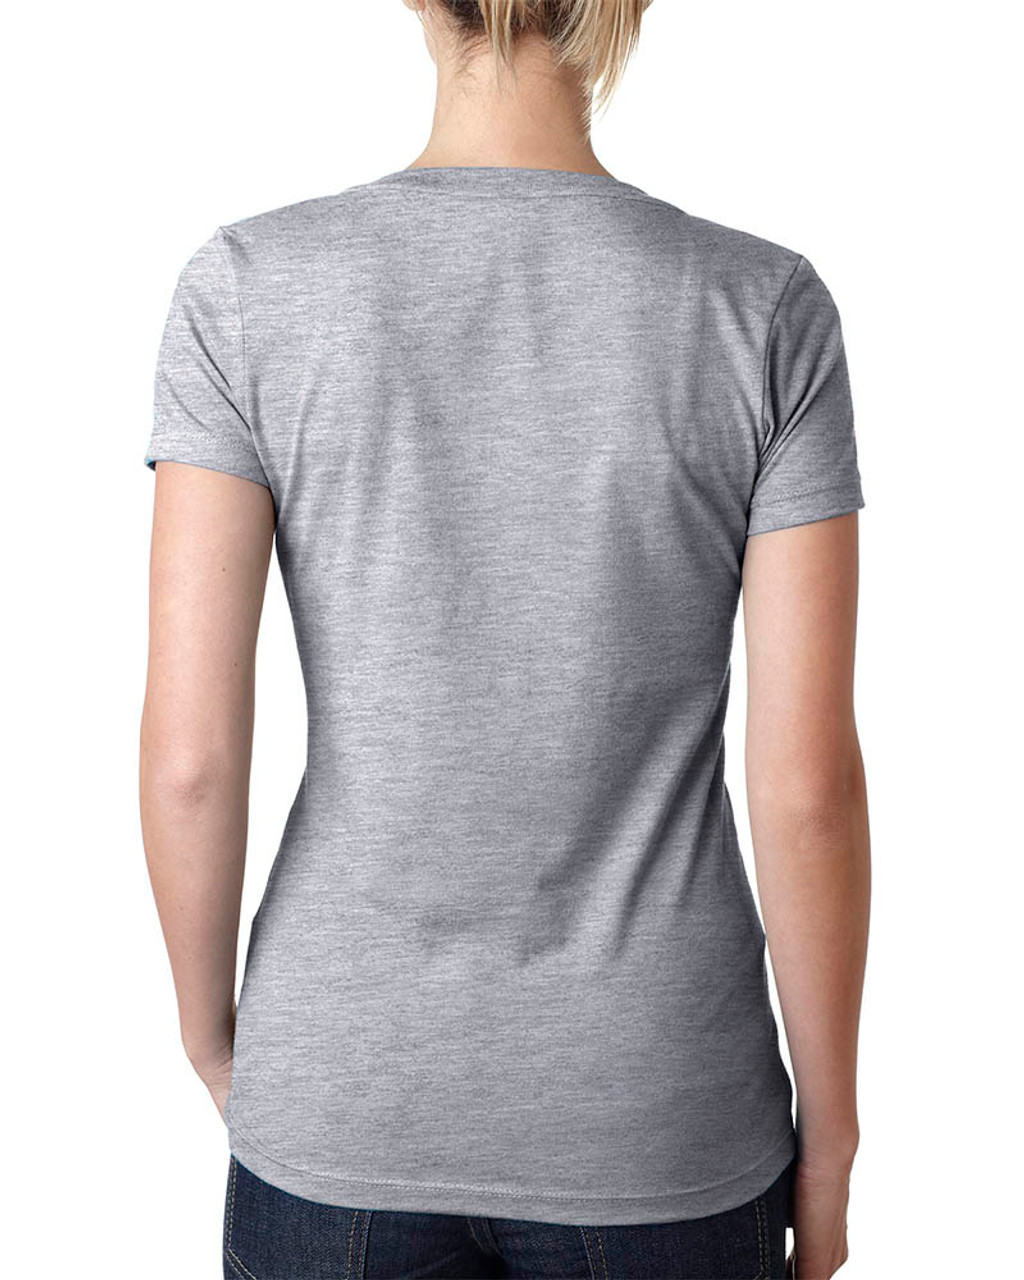 Dark Heather Grey - 6640 Next Level Ladies' CVC Deep V-Neck T-shirt  | BlankClothing.ca